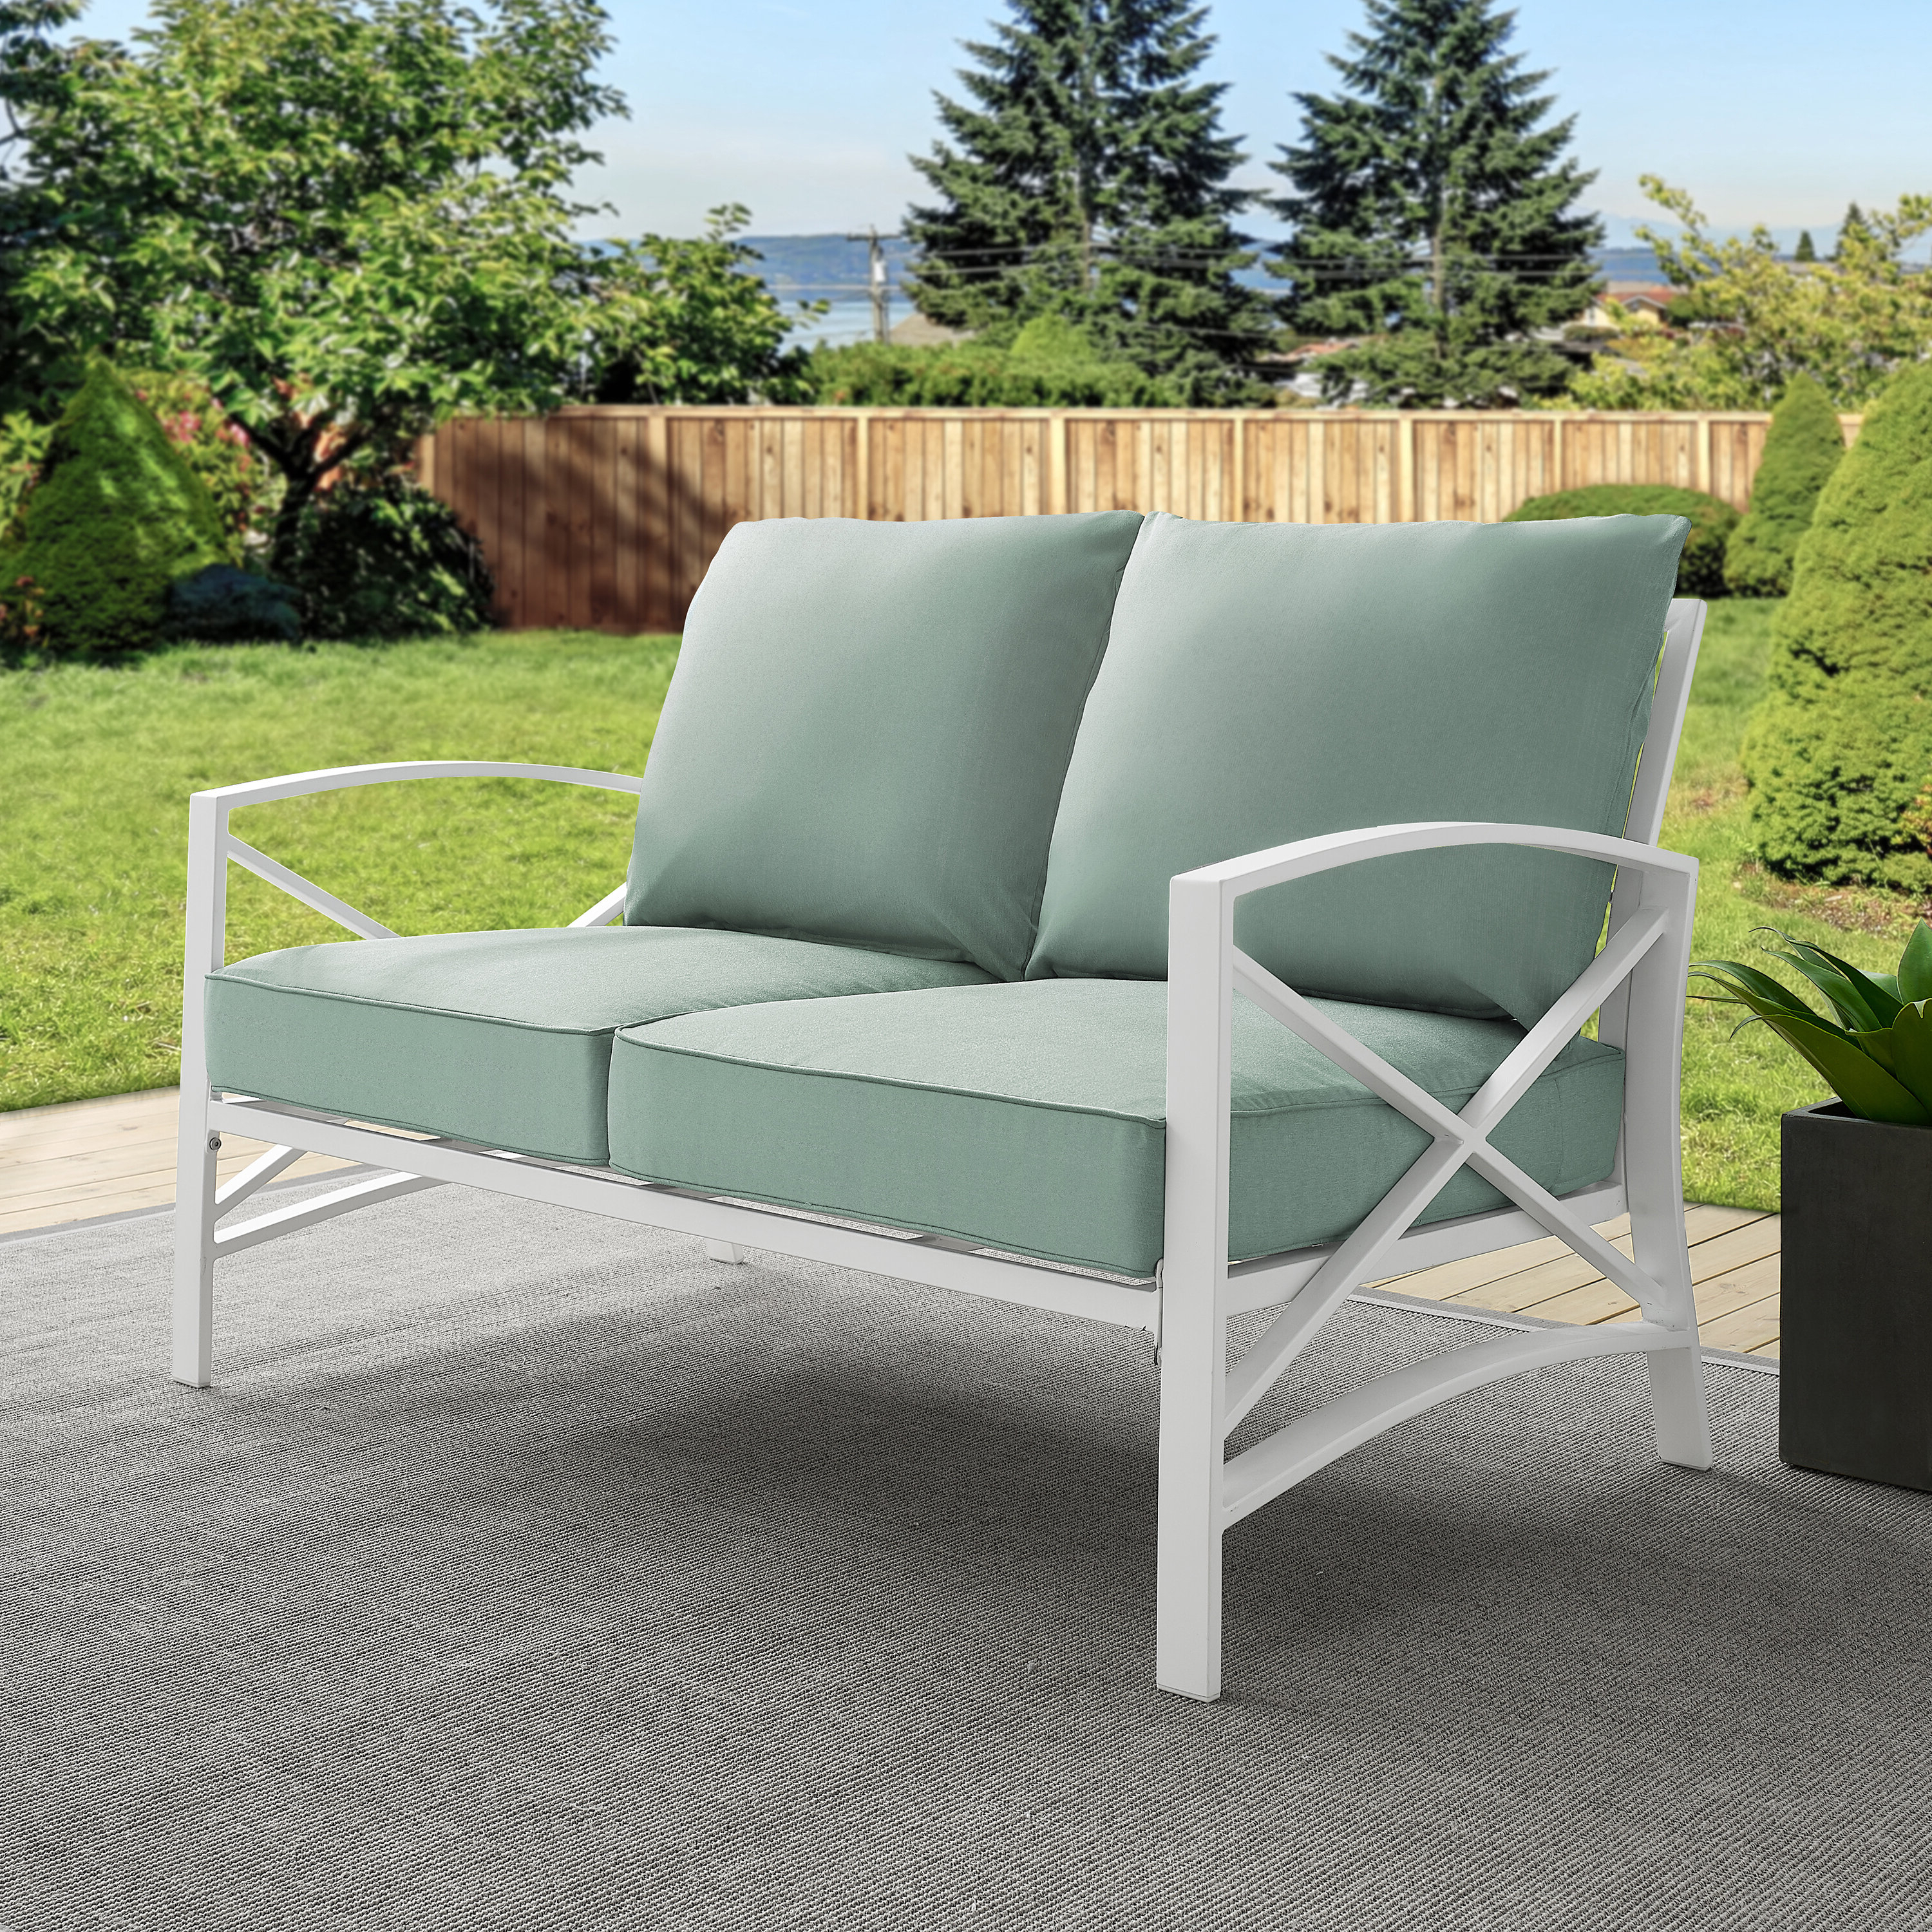 Well Known Freitag Loveseat With Cushions In Mendelson Loveseats With Cushion (View 20 of 20)